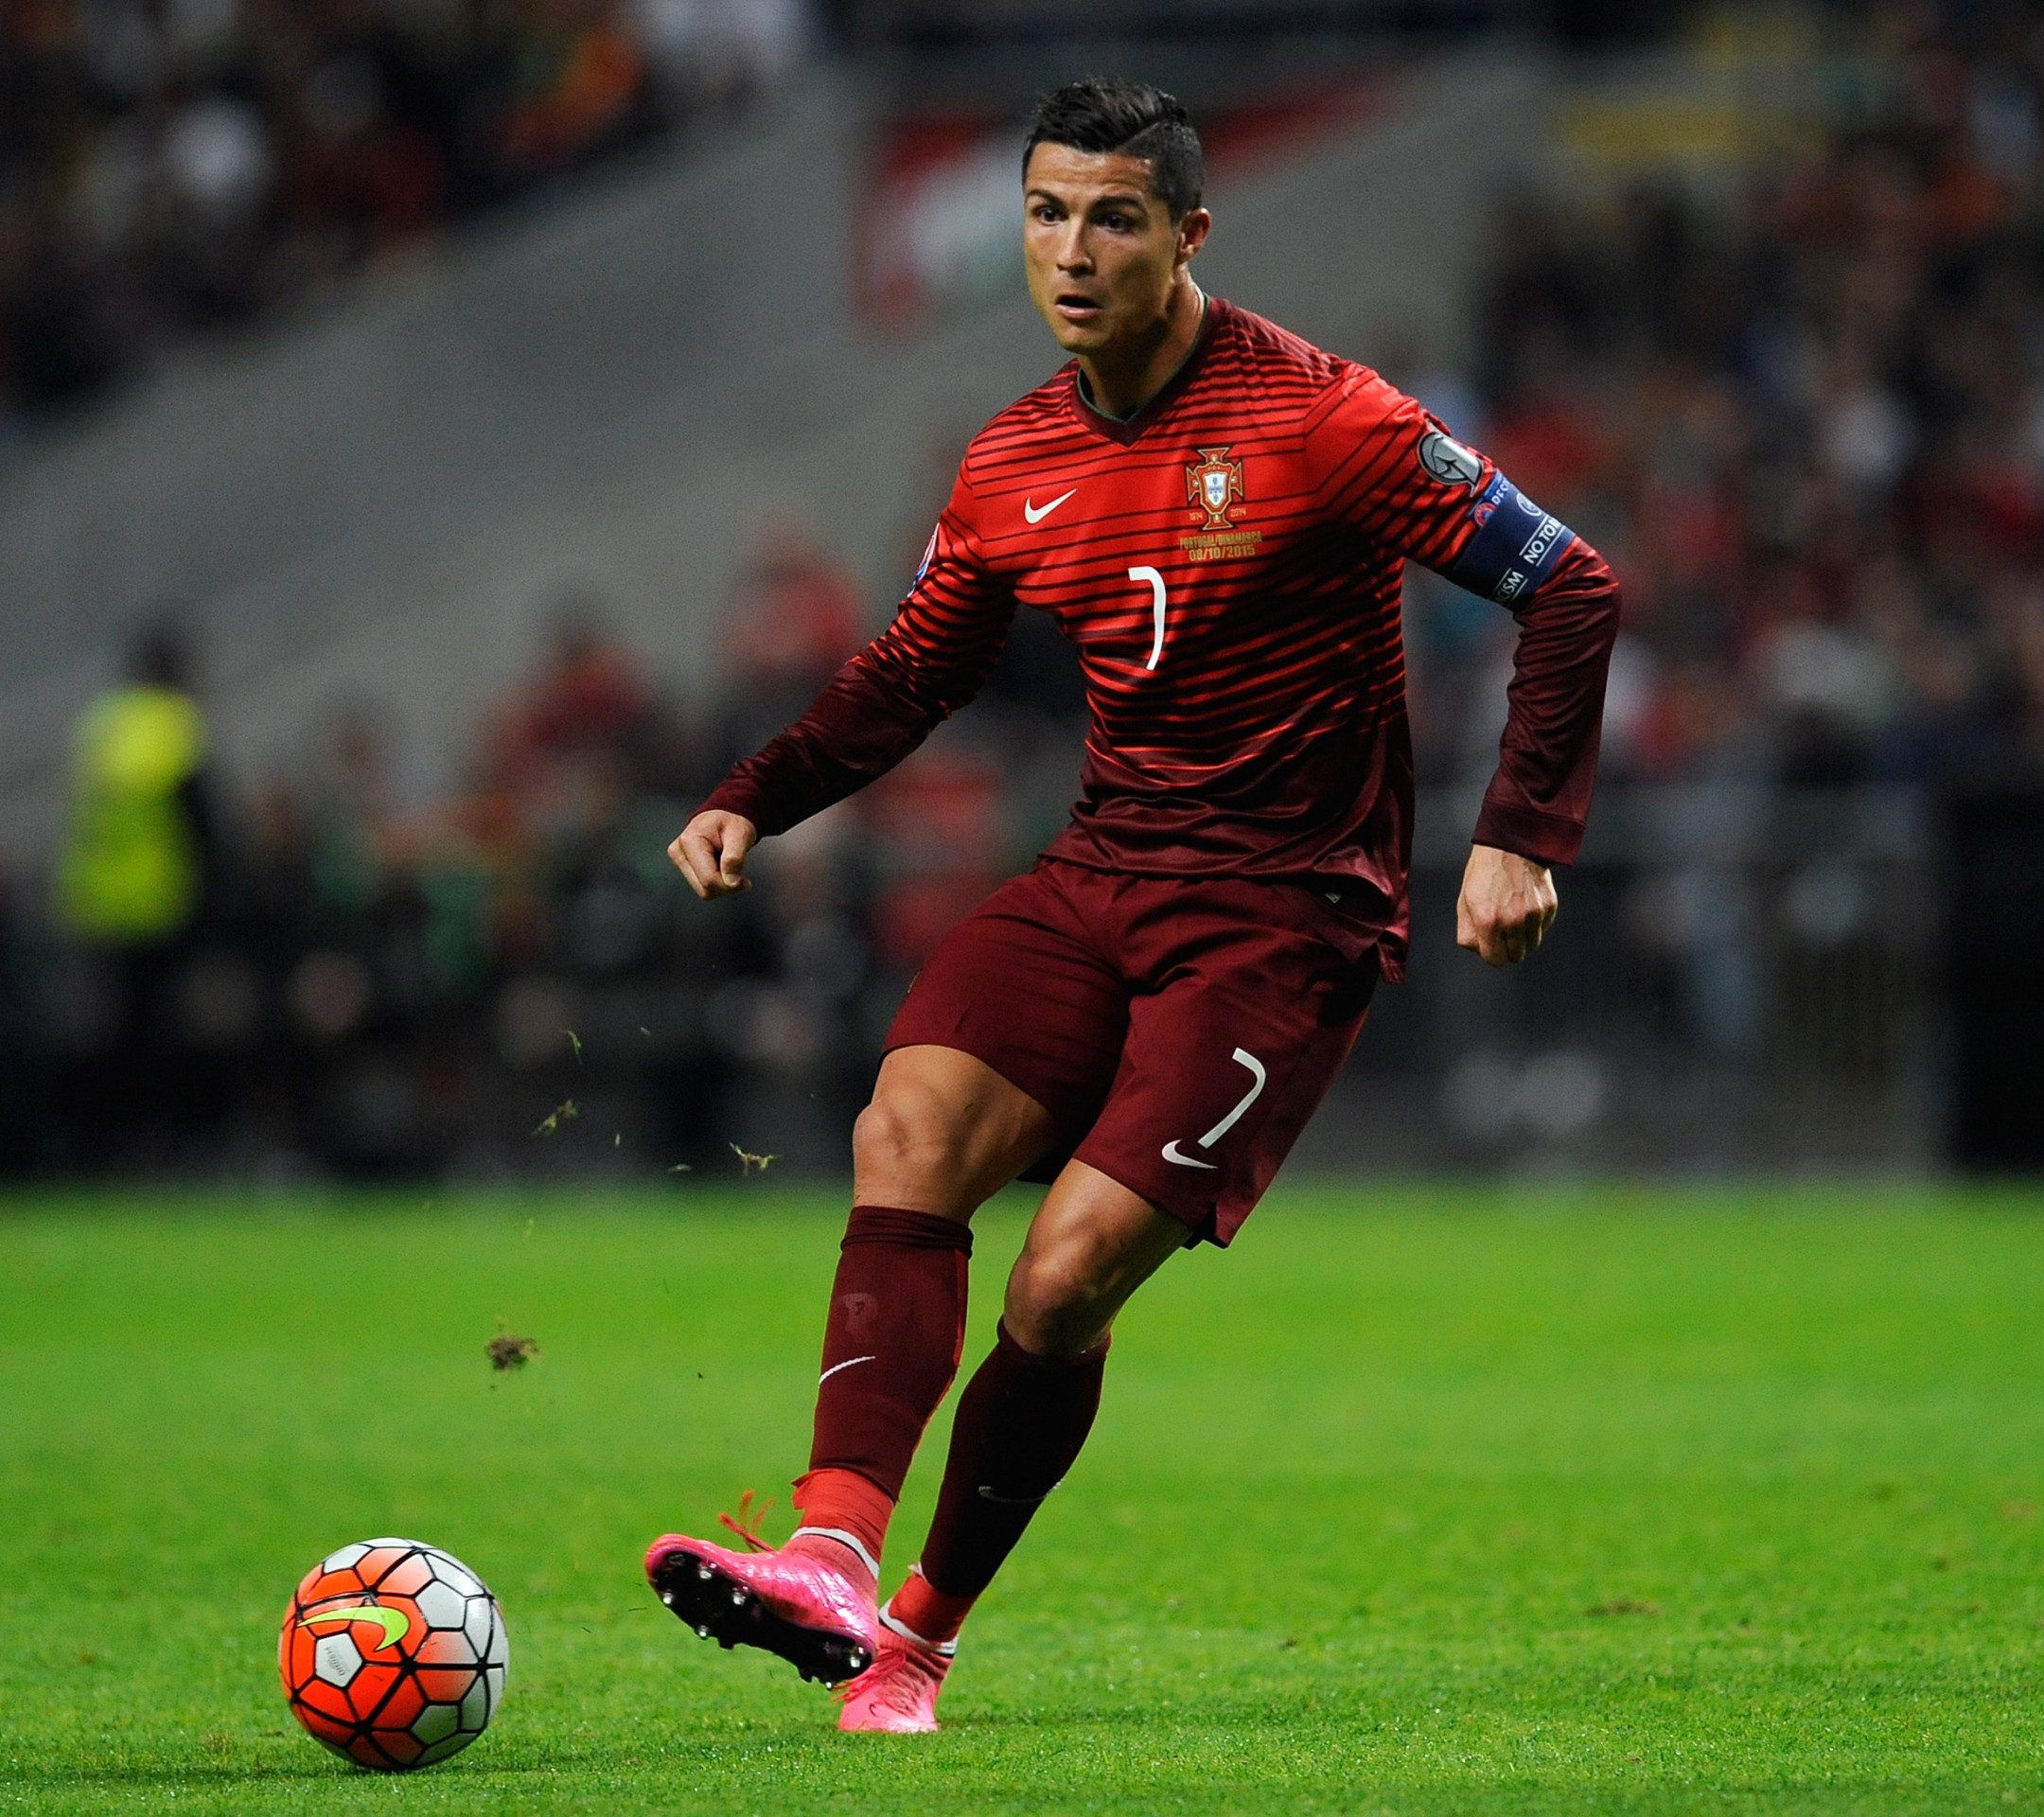 Cristiano ronaldo wallpapers 71 images - C ronaldo wallpaper portugal ...